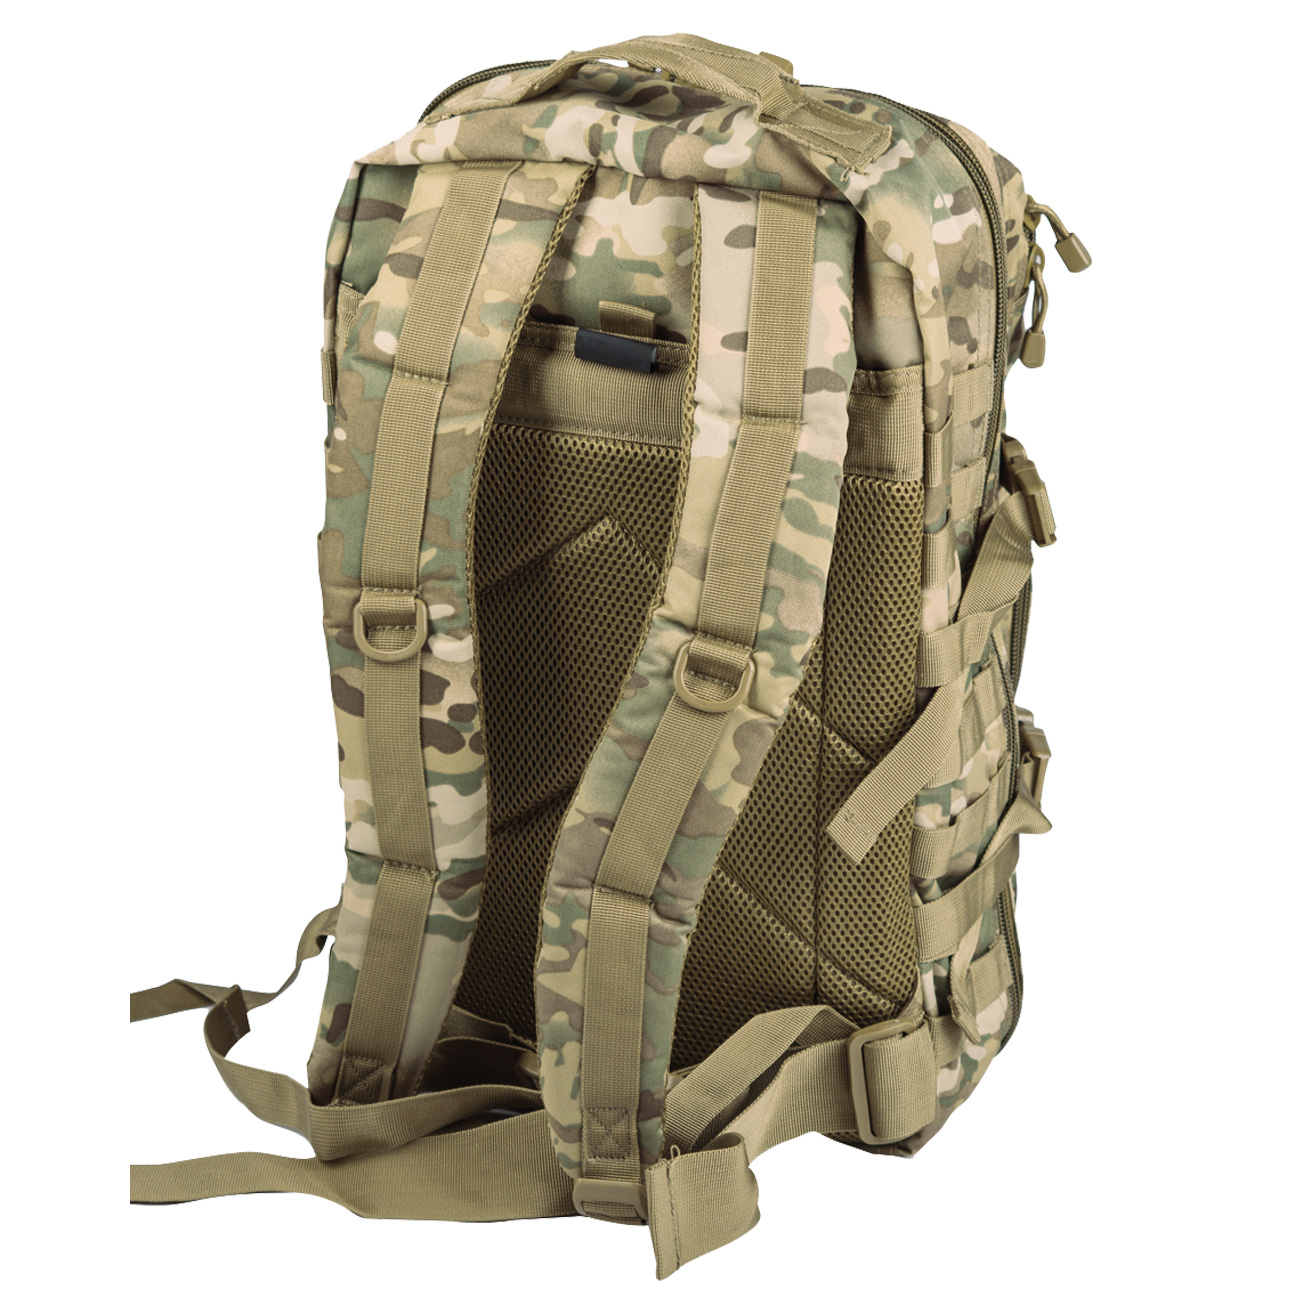 Mil-Tec Rucksack US Assault Pack II 40 Liter multitarn 1